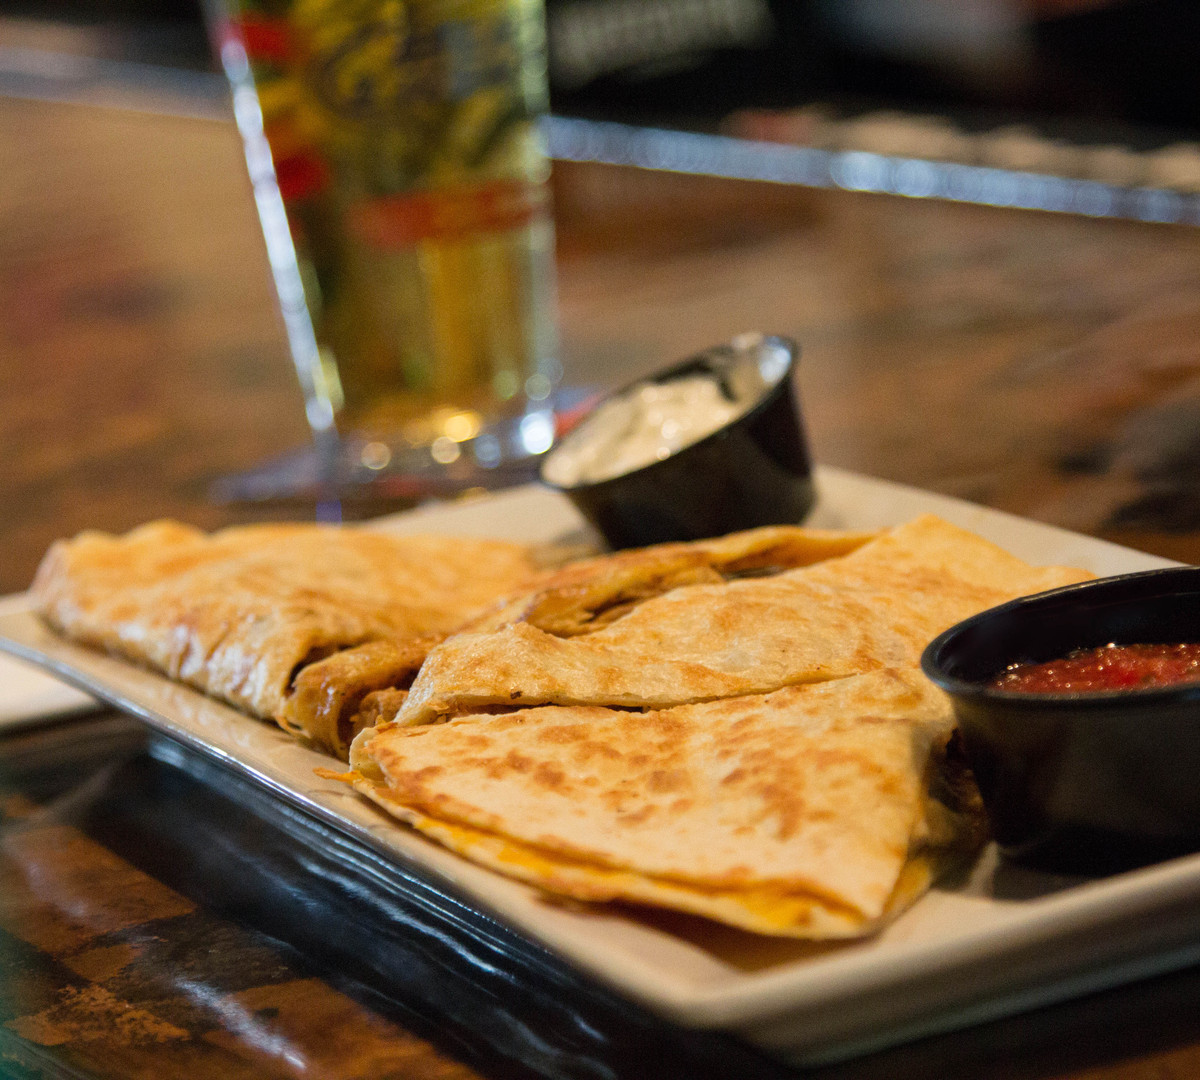 Quesadilla-at-Bar.jpg